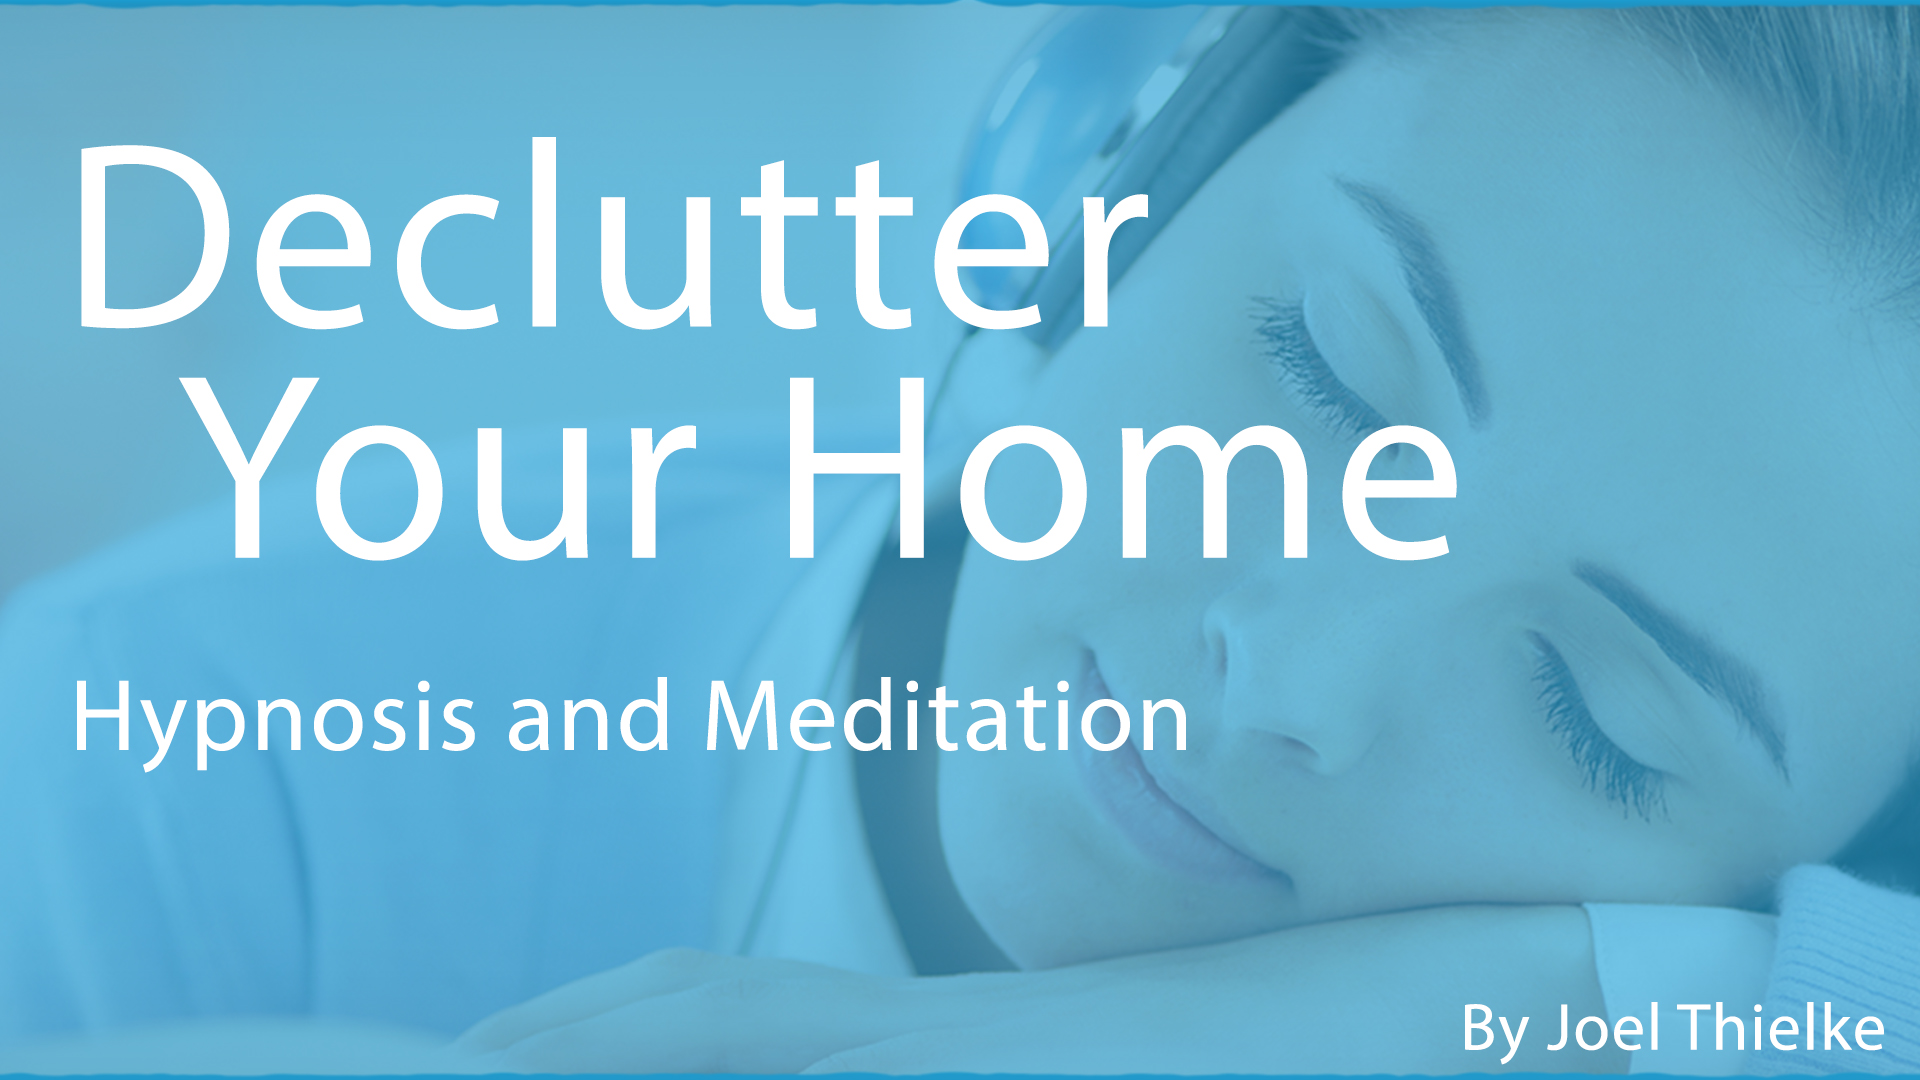 Amazon.com: Meditation-Declutter Your Home, Hypnosis (The Sleep ...